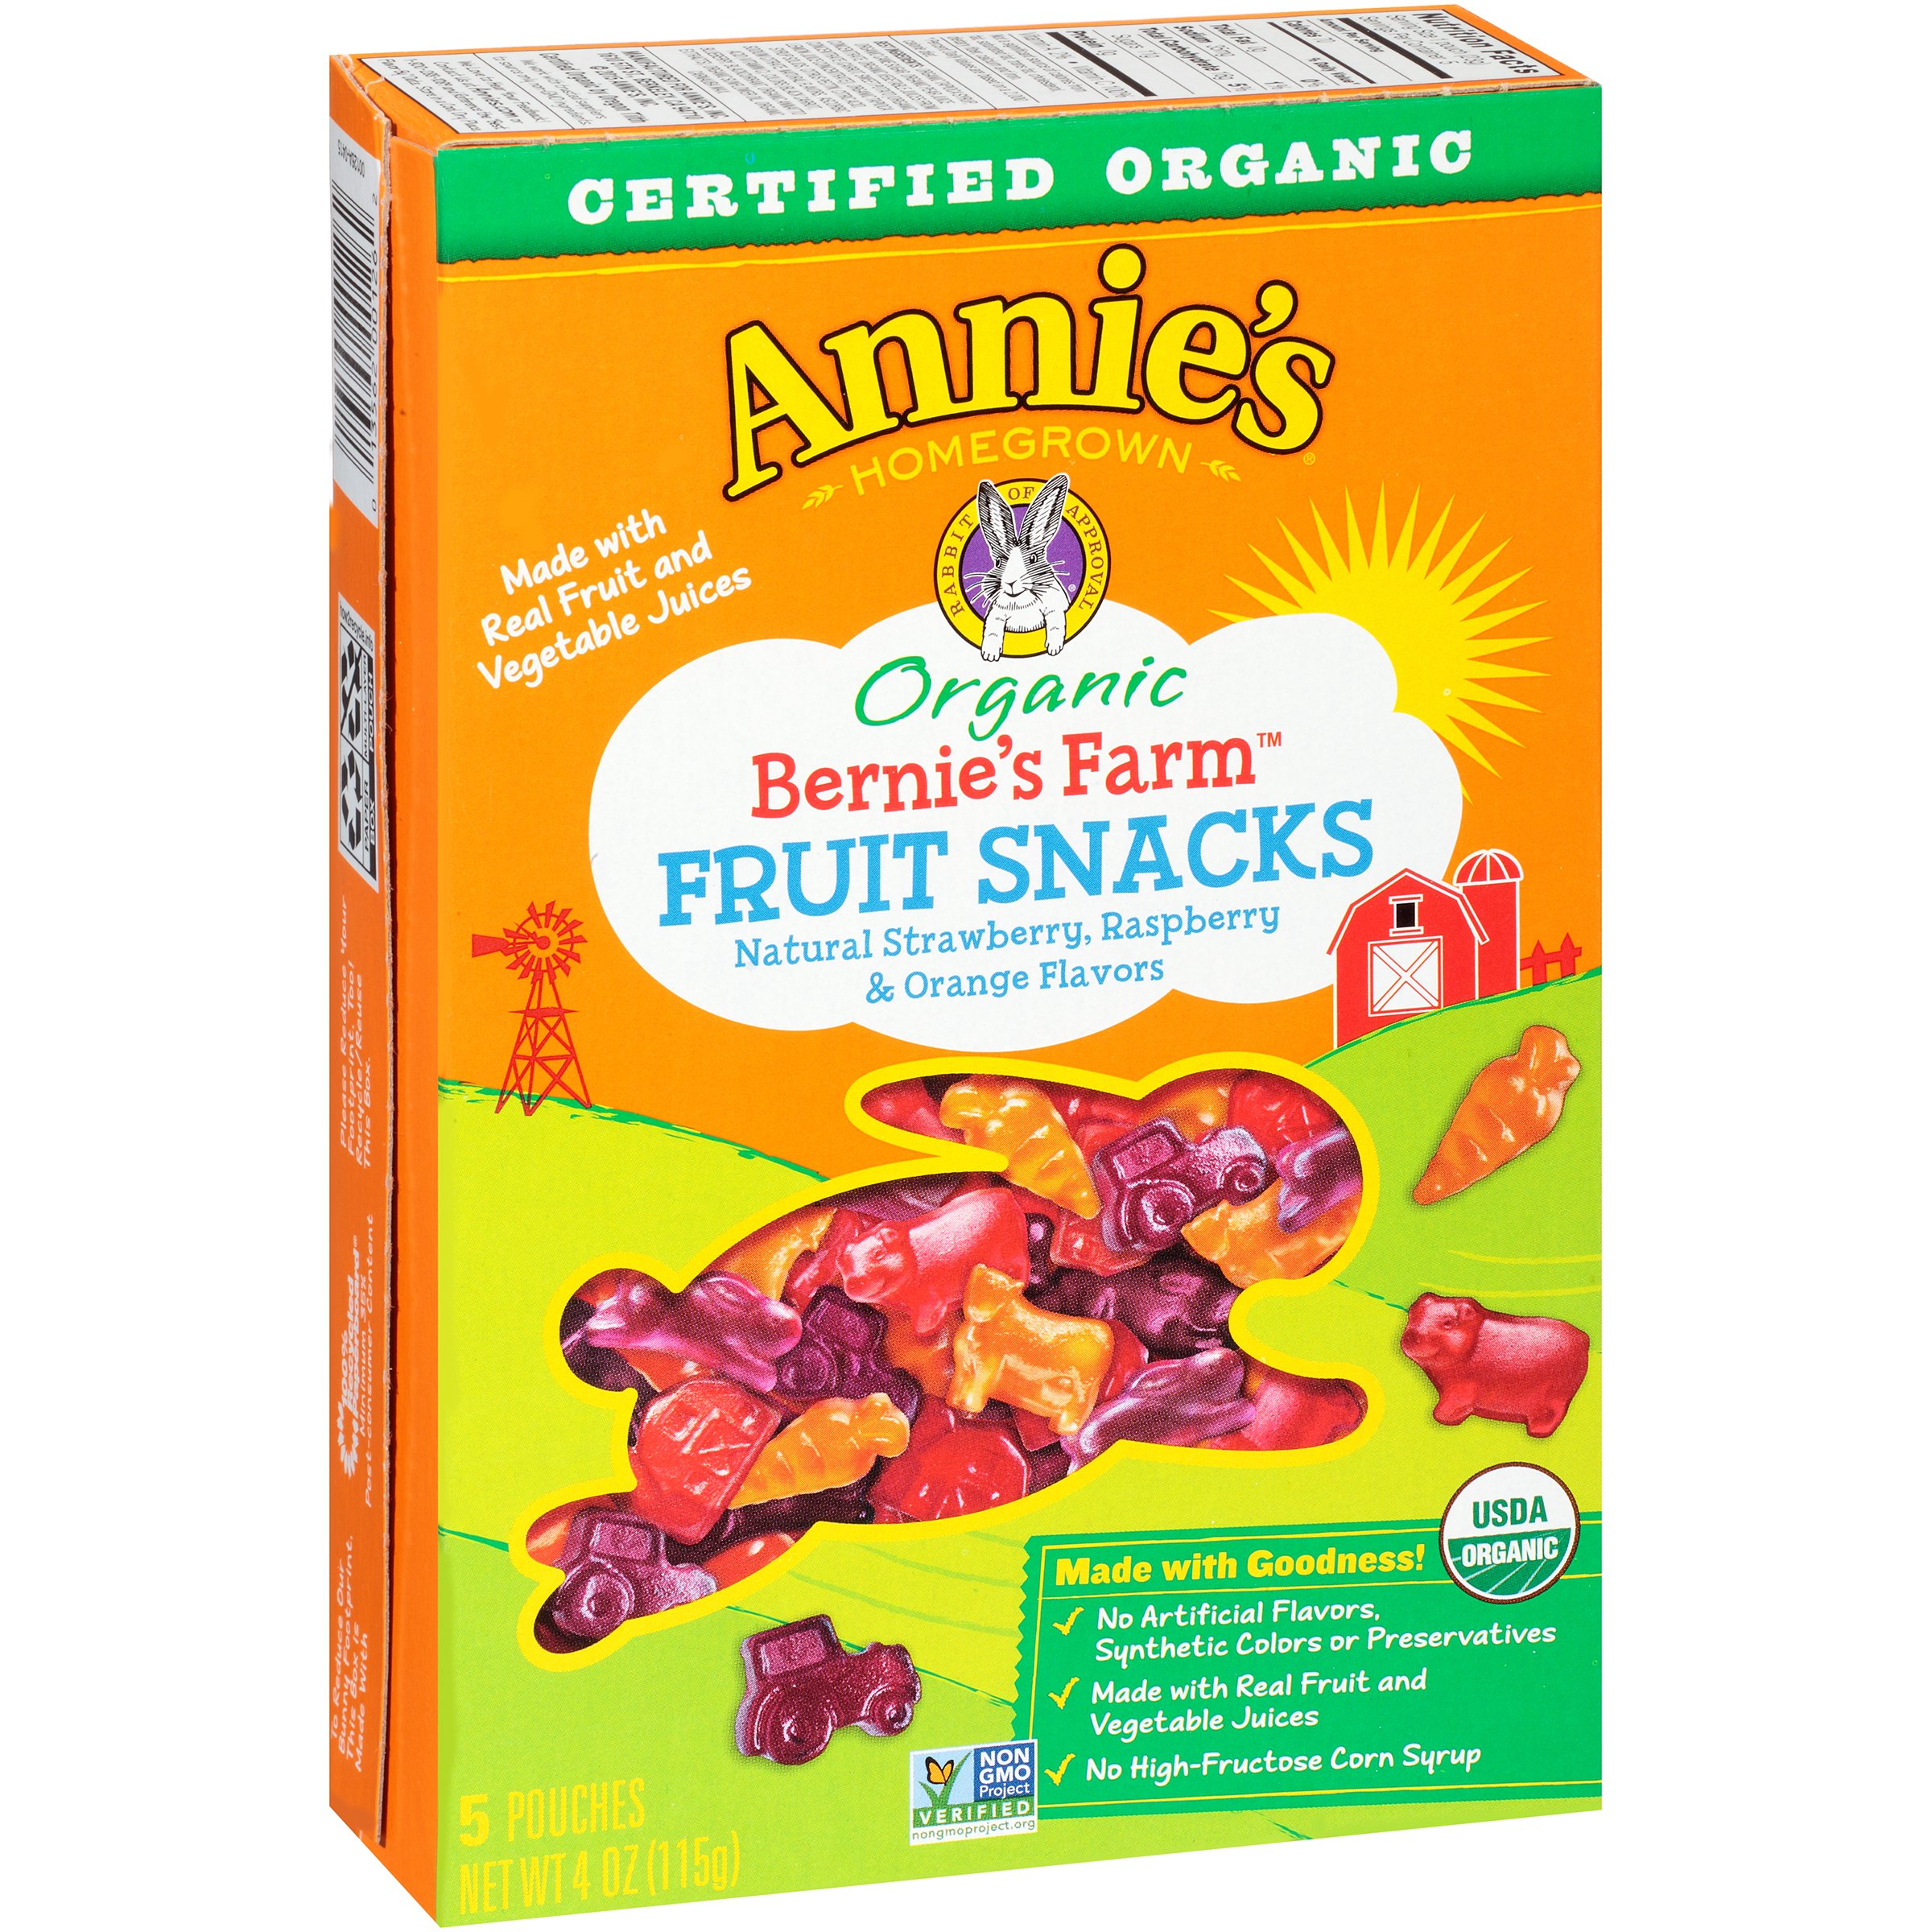 Annie's Organic Bernie's Farm Fruit Snacks, Strawberry, Raspberry & Orange, 5 Ct